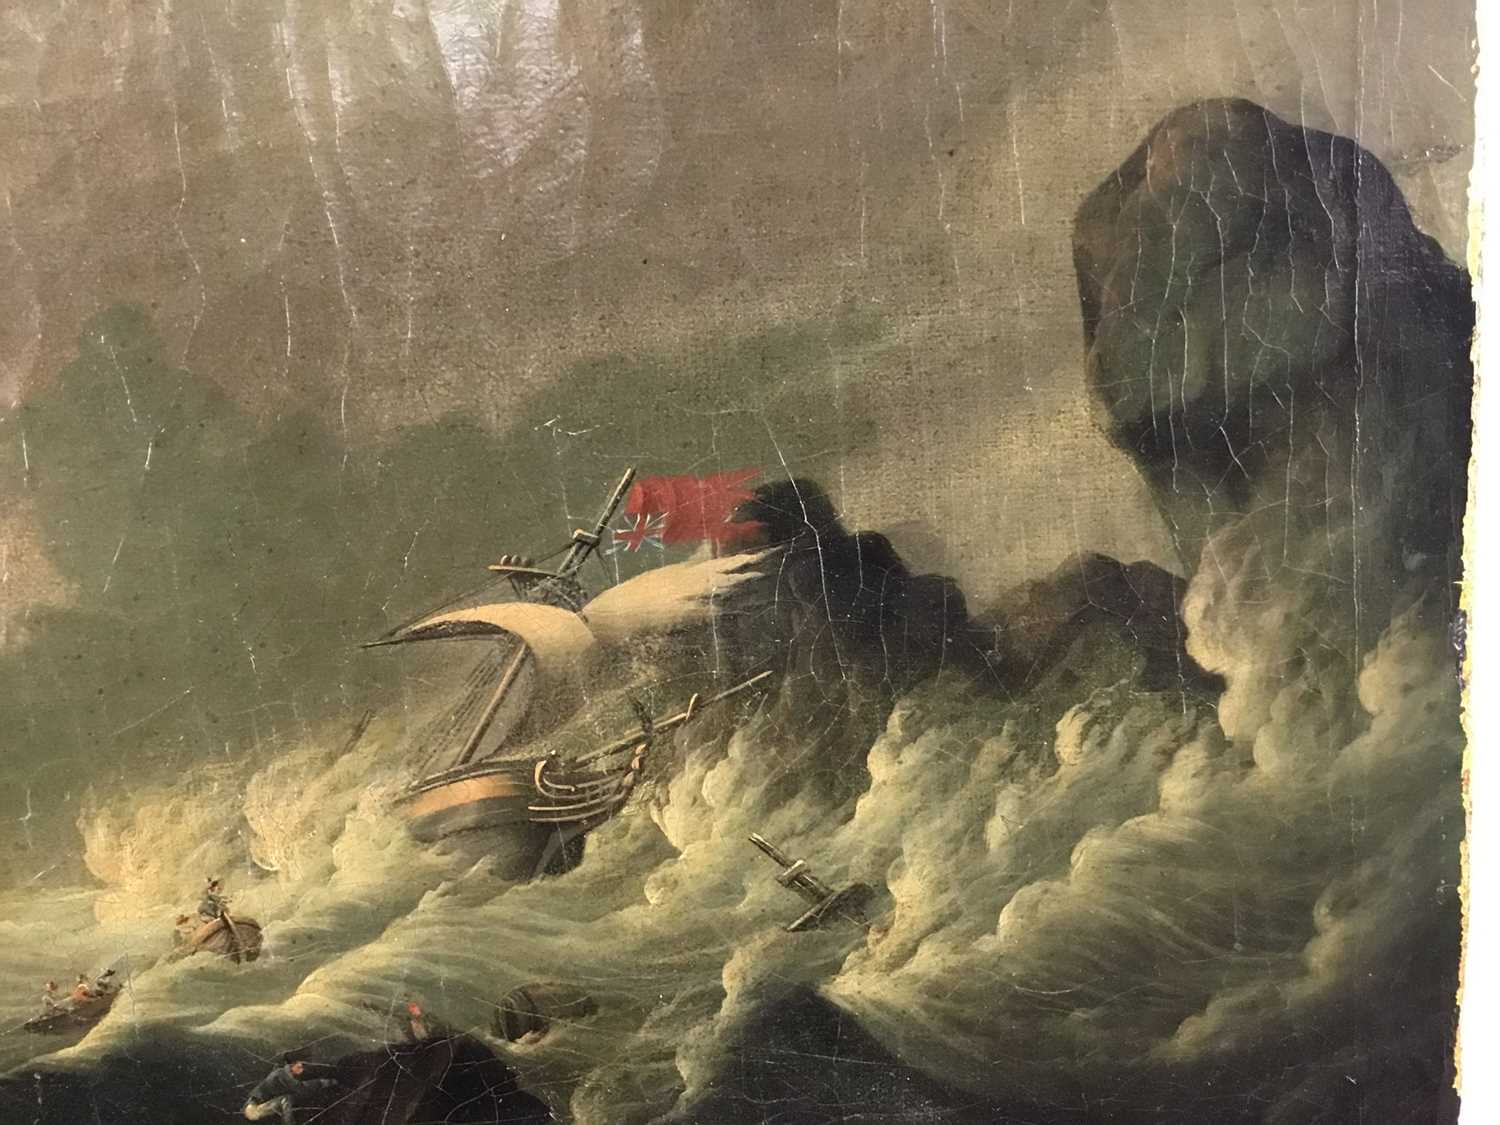 Attributed to Joseph Vernet (1714-1789) oil on canvas - shipping crashing against the rocks, 55cm x - Image 6 of 12